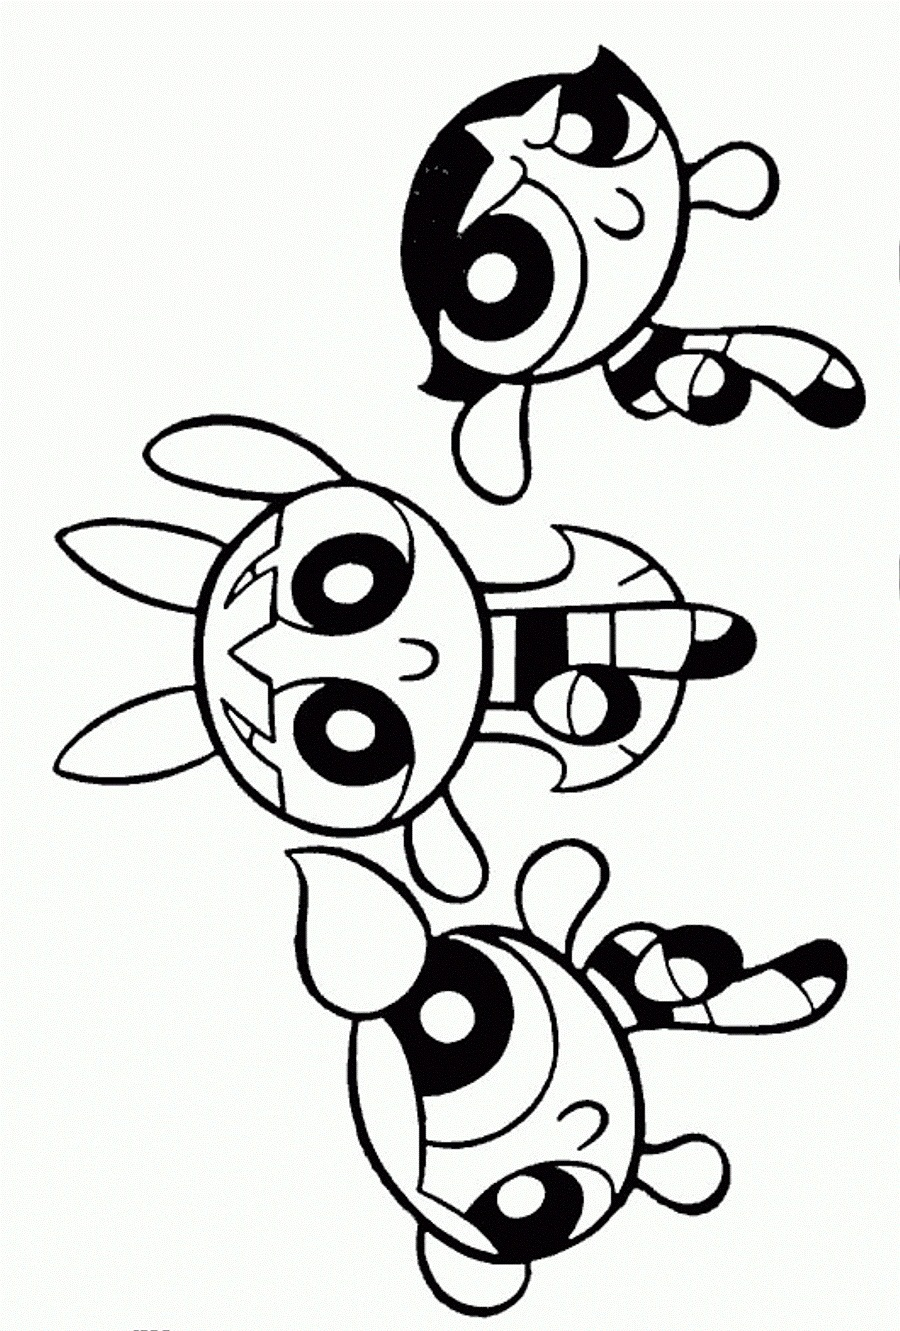 gir coloring book pages - photo#6